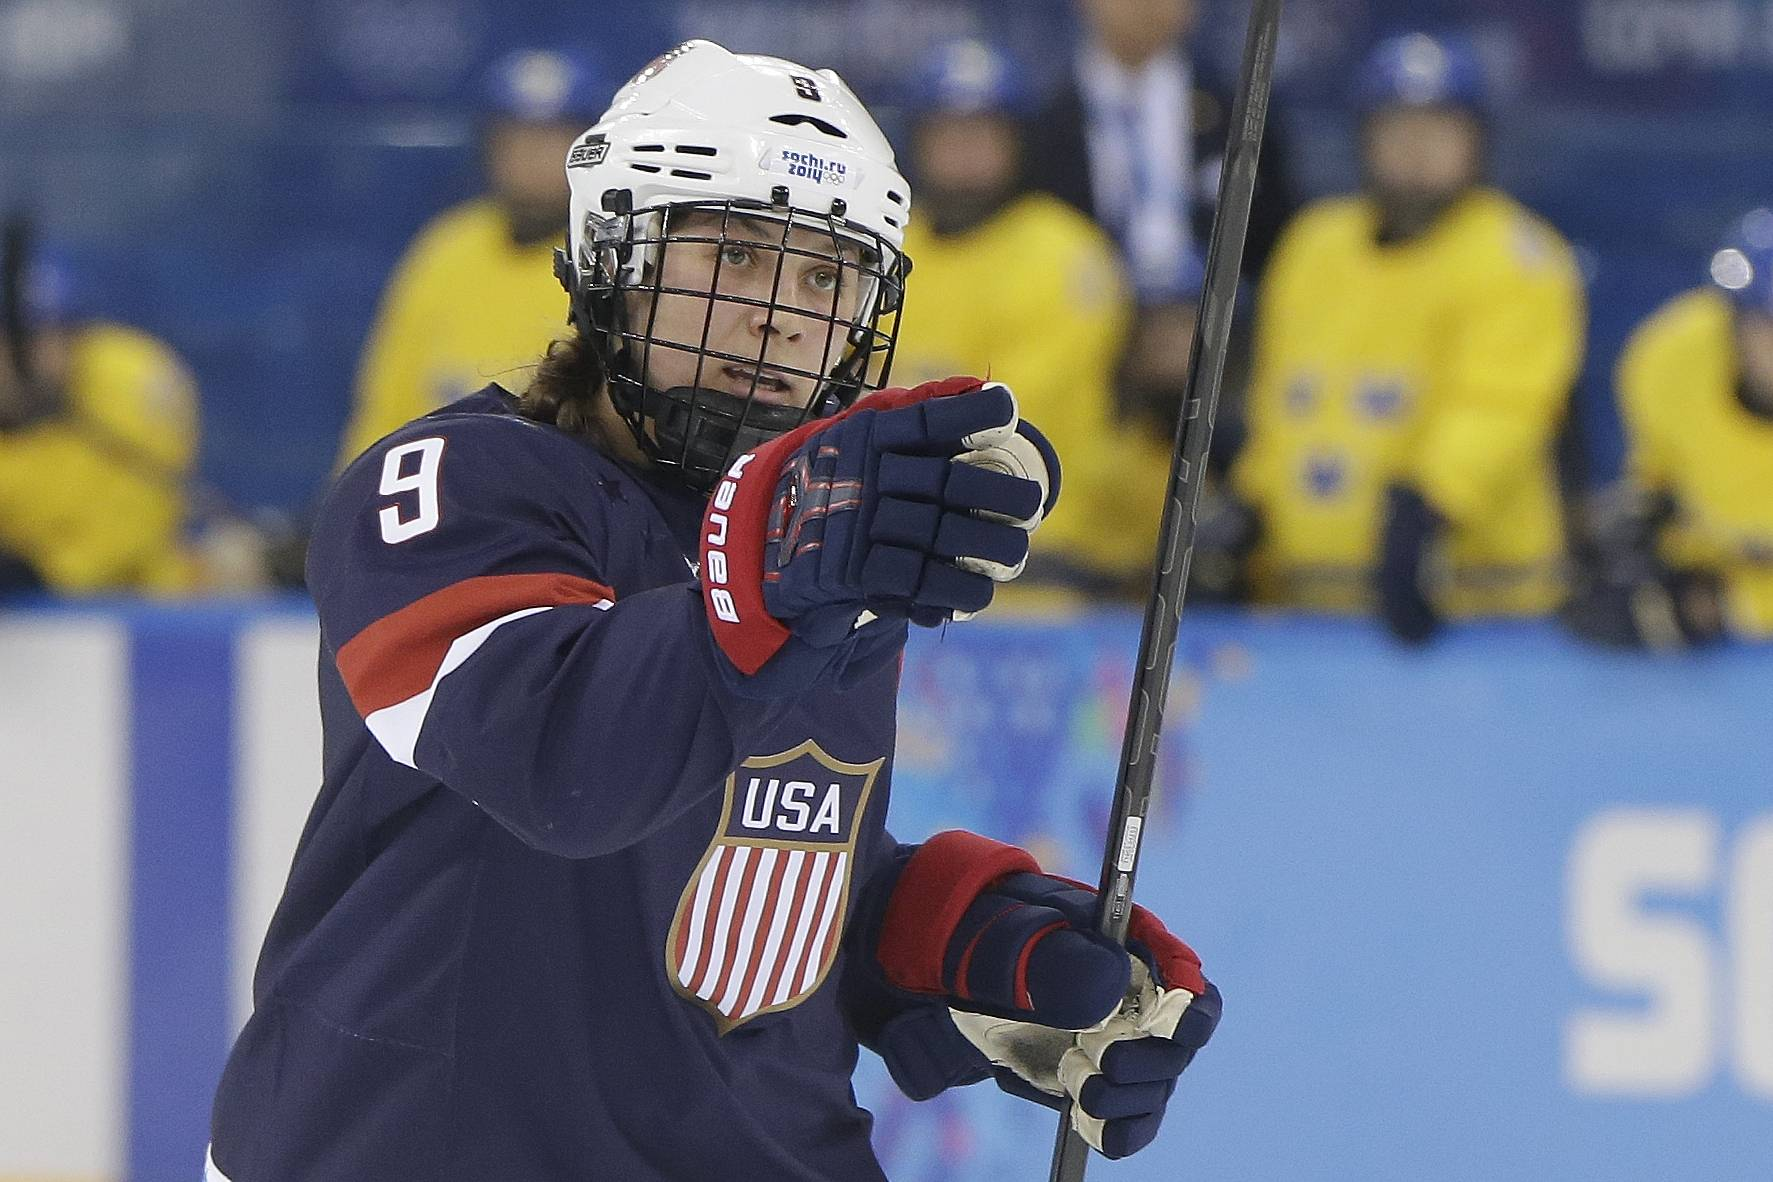 U.S. women coast past Sweden 6-1 in Olympic hockey